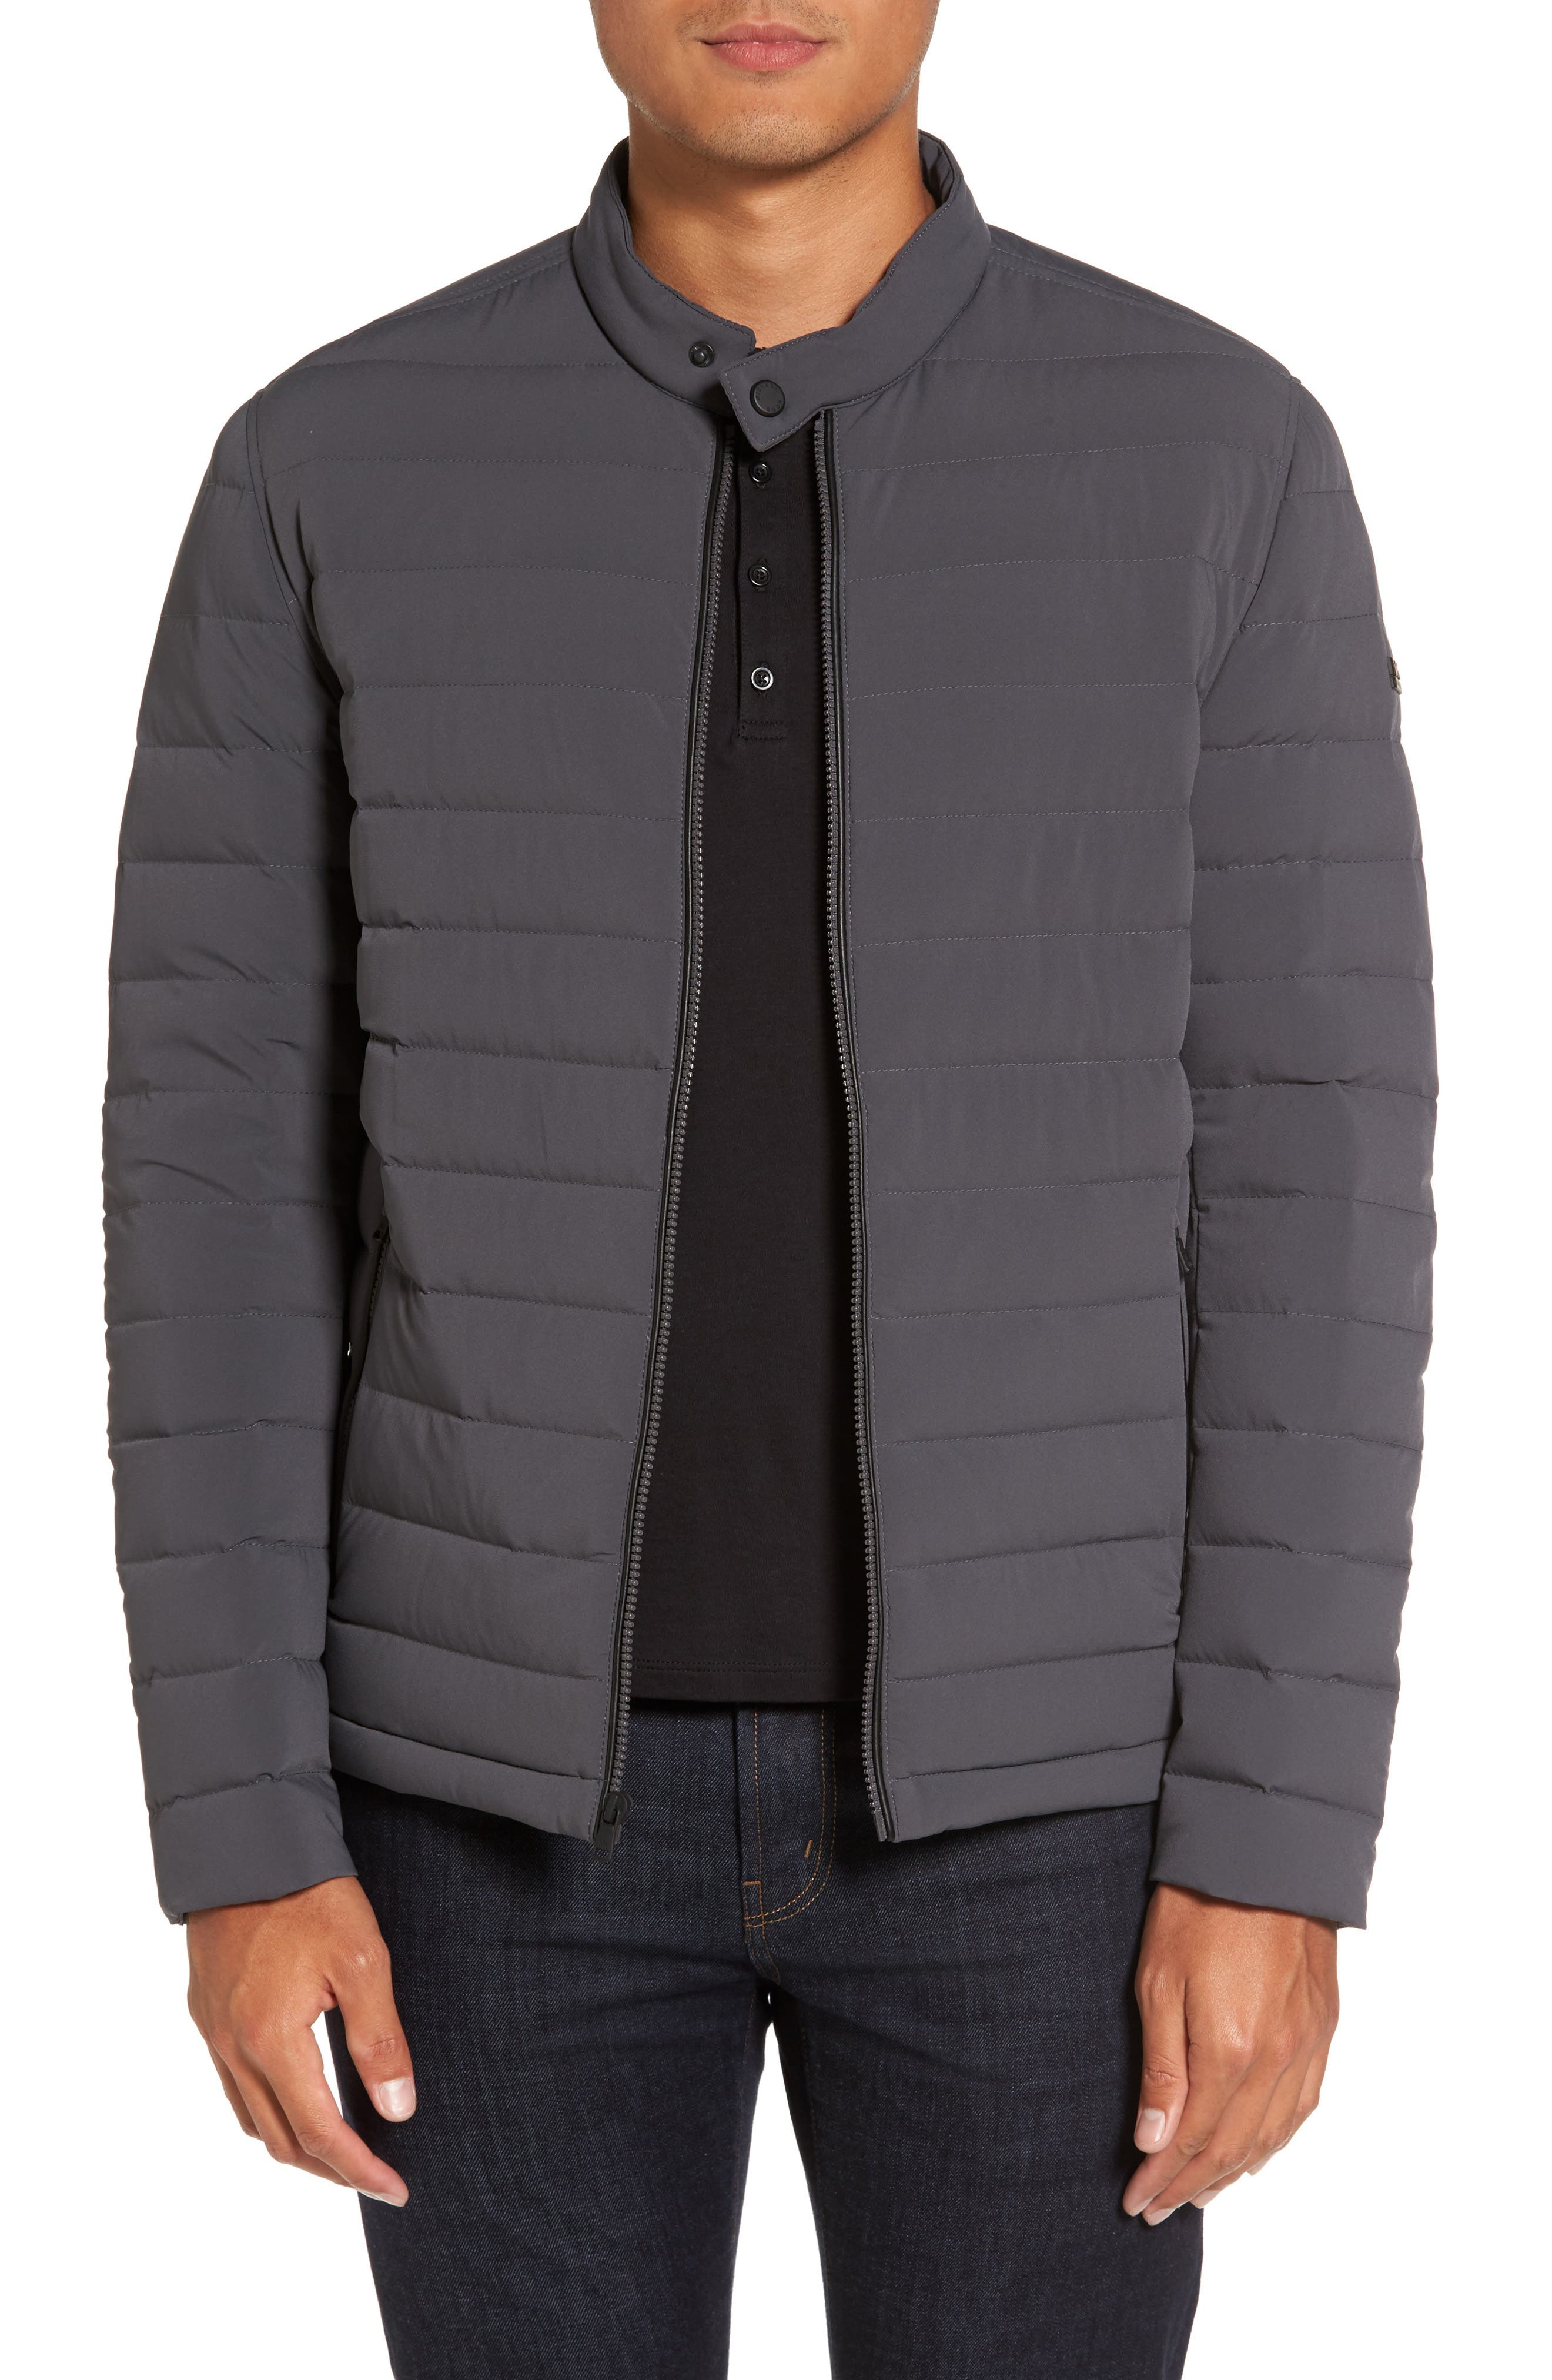 Michael Kors Packable Stretch Down Jacket